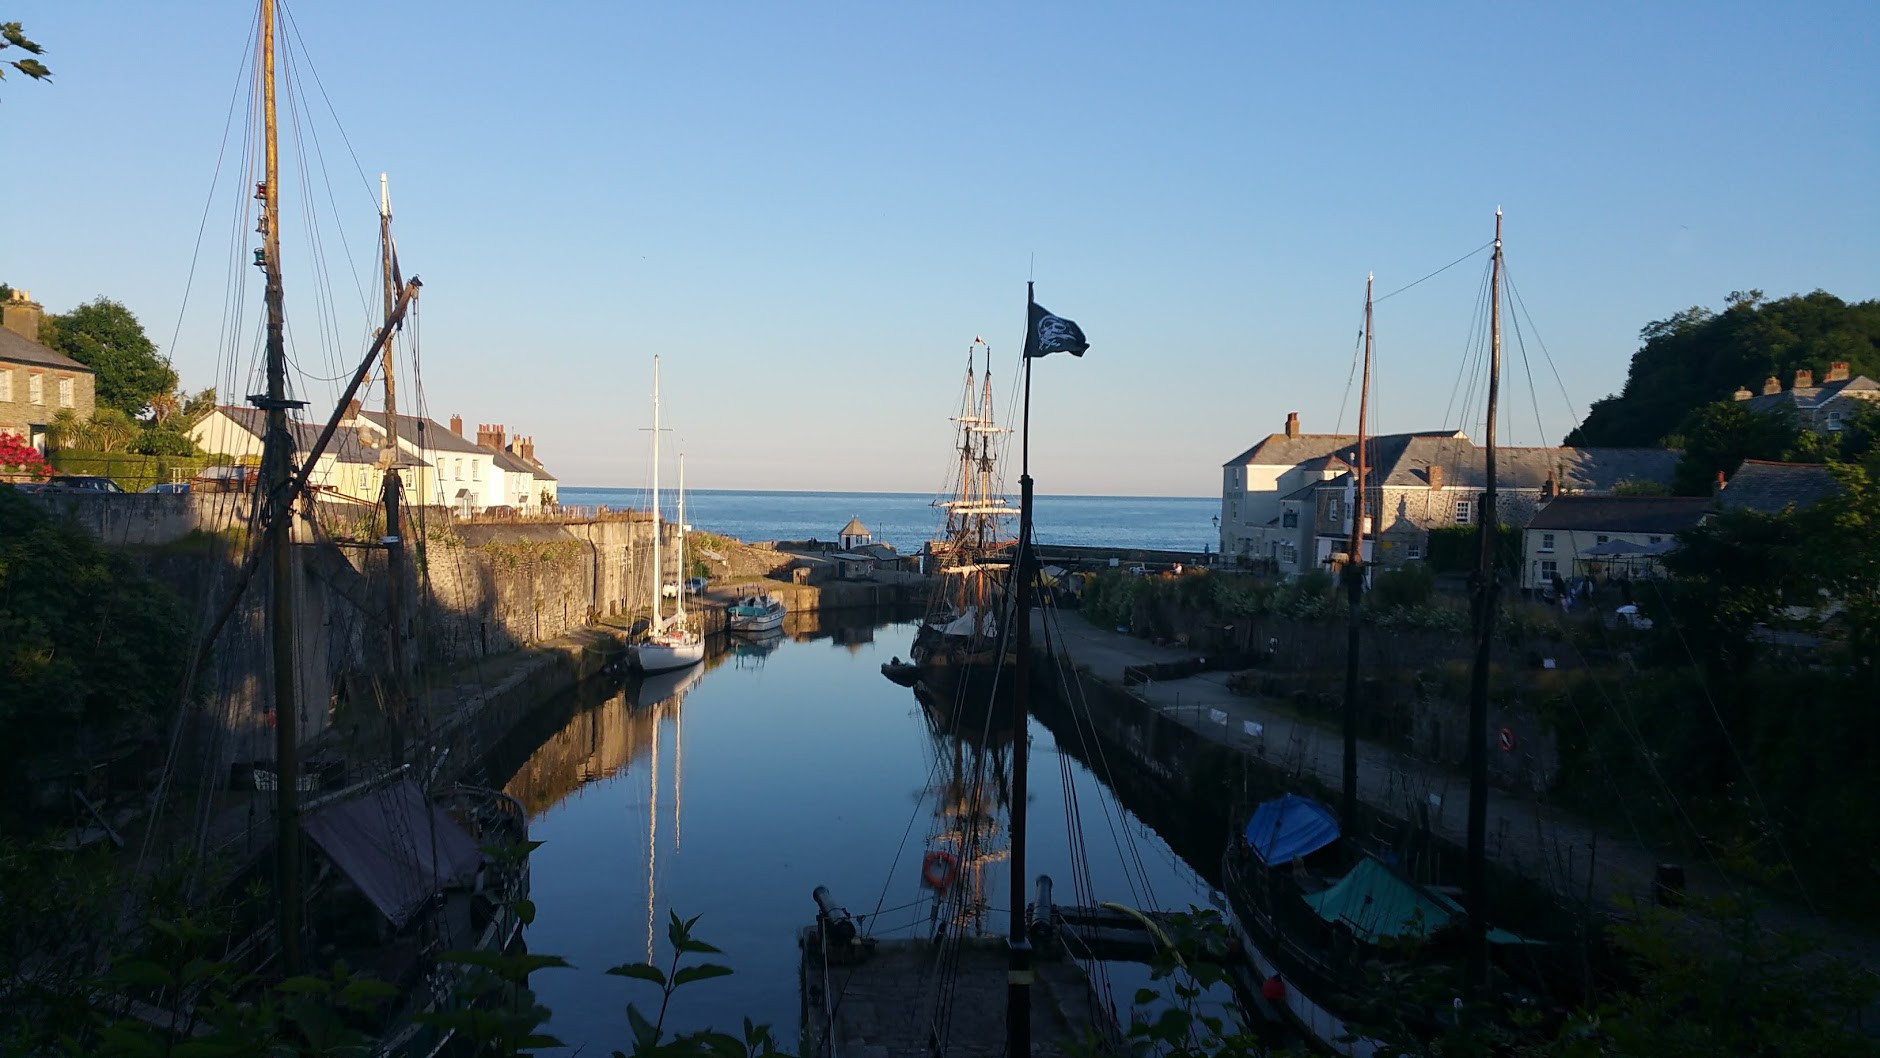 charlestown harbour1.jpg